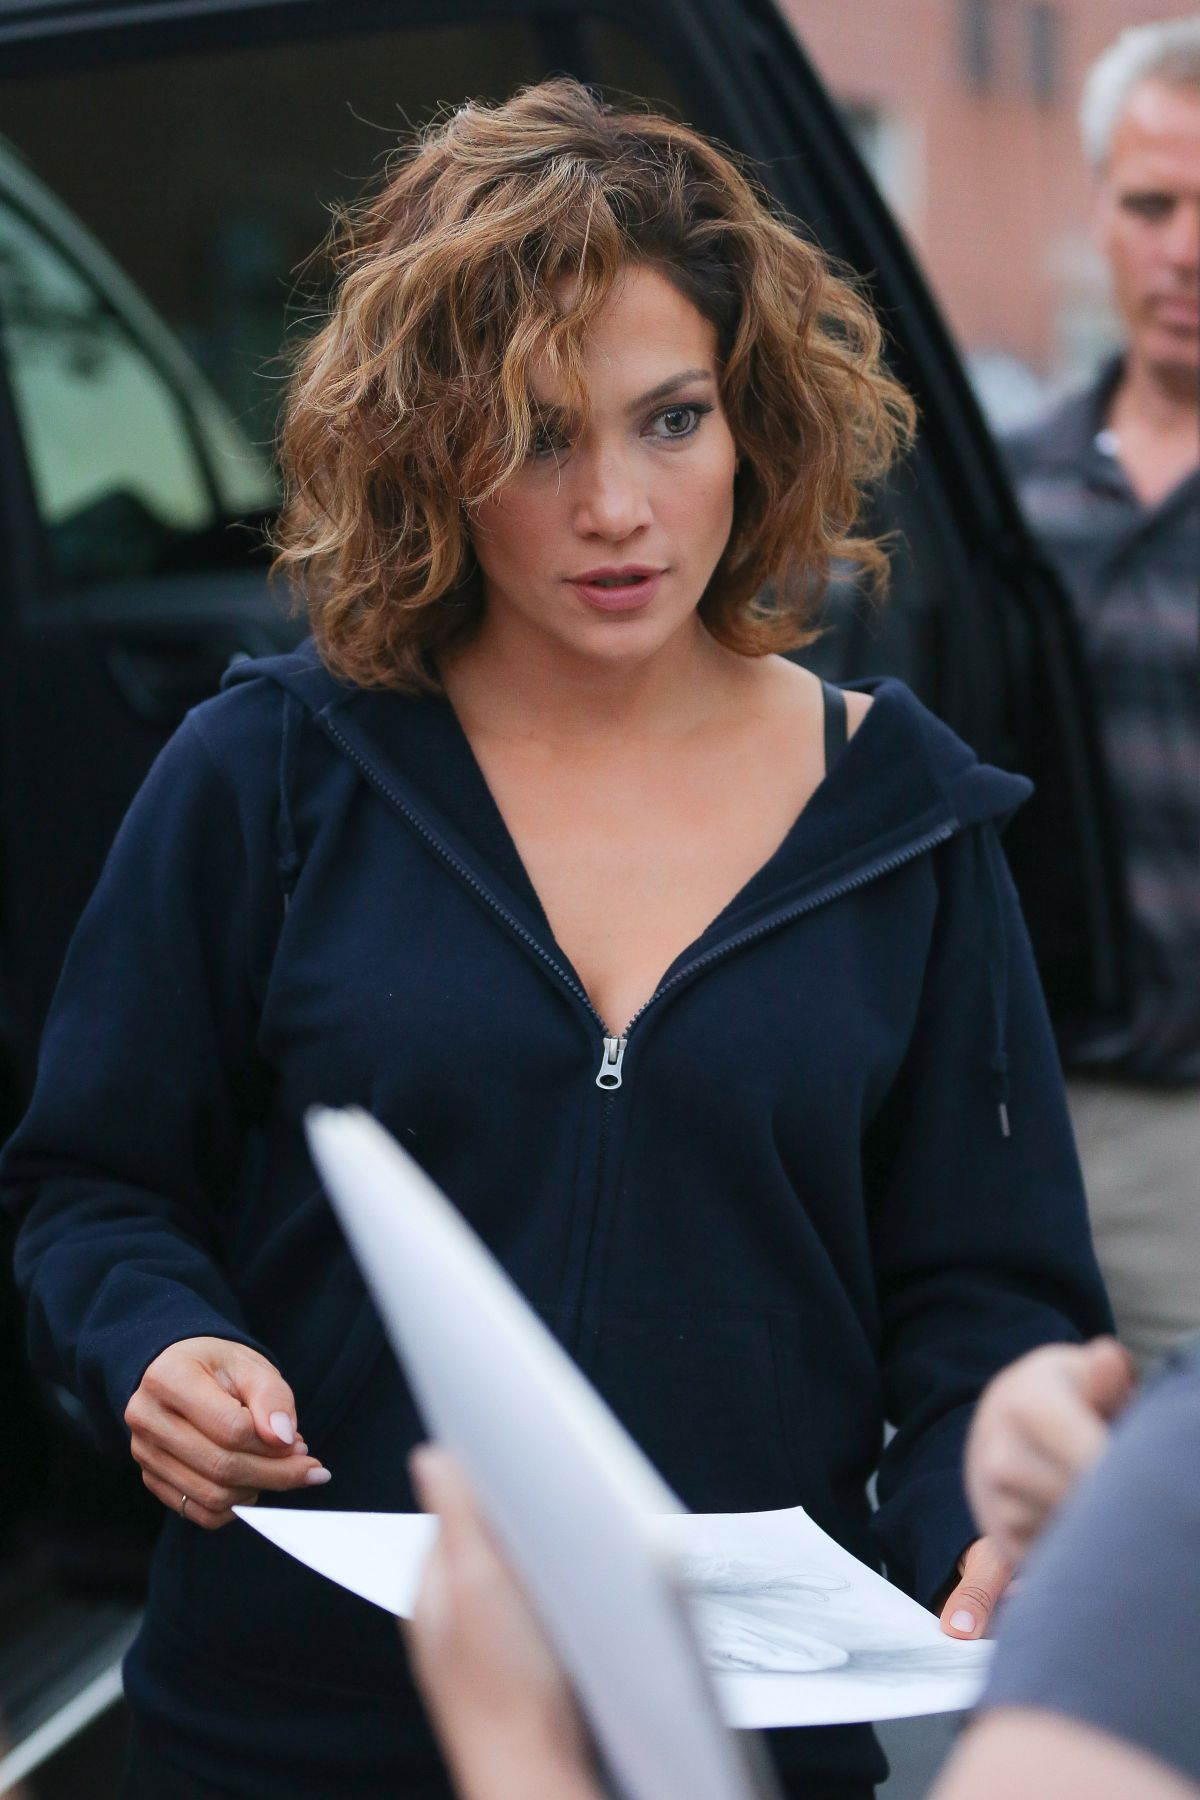 JENNIFER LOPEZ at Shades of Blue Set in New York 07 23 2015